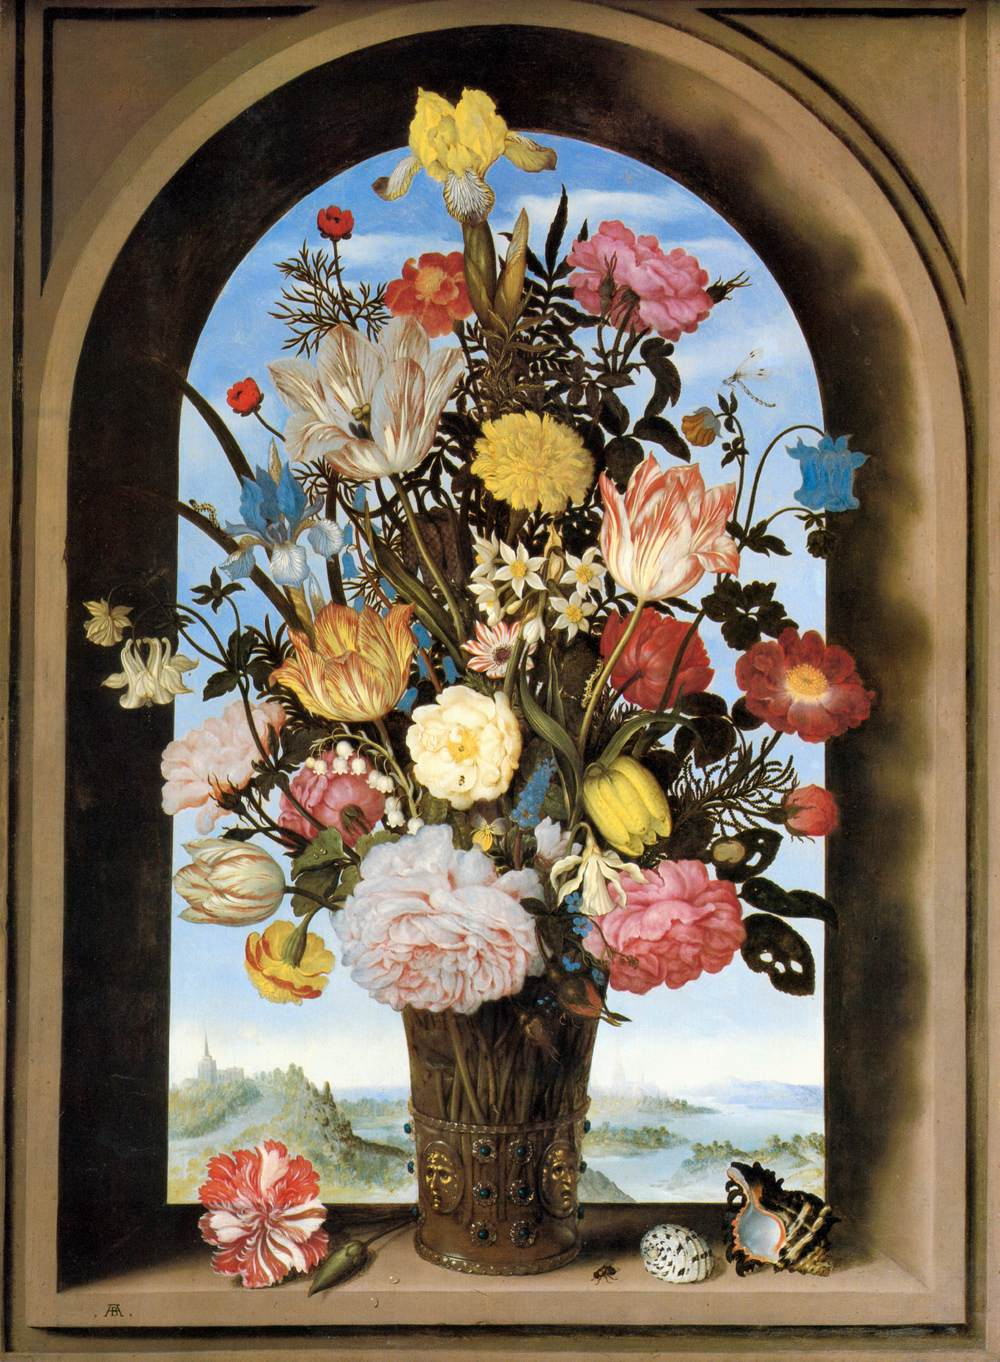 Flower bouquet - Wikipedia